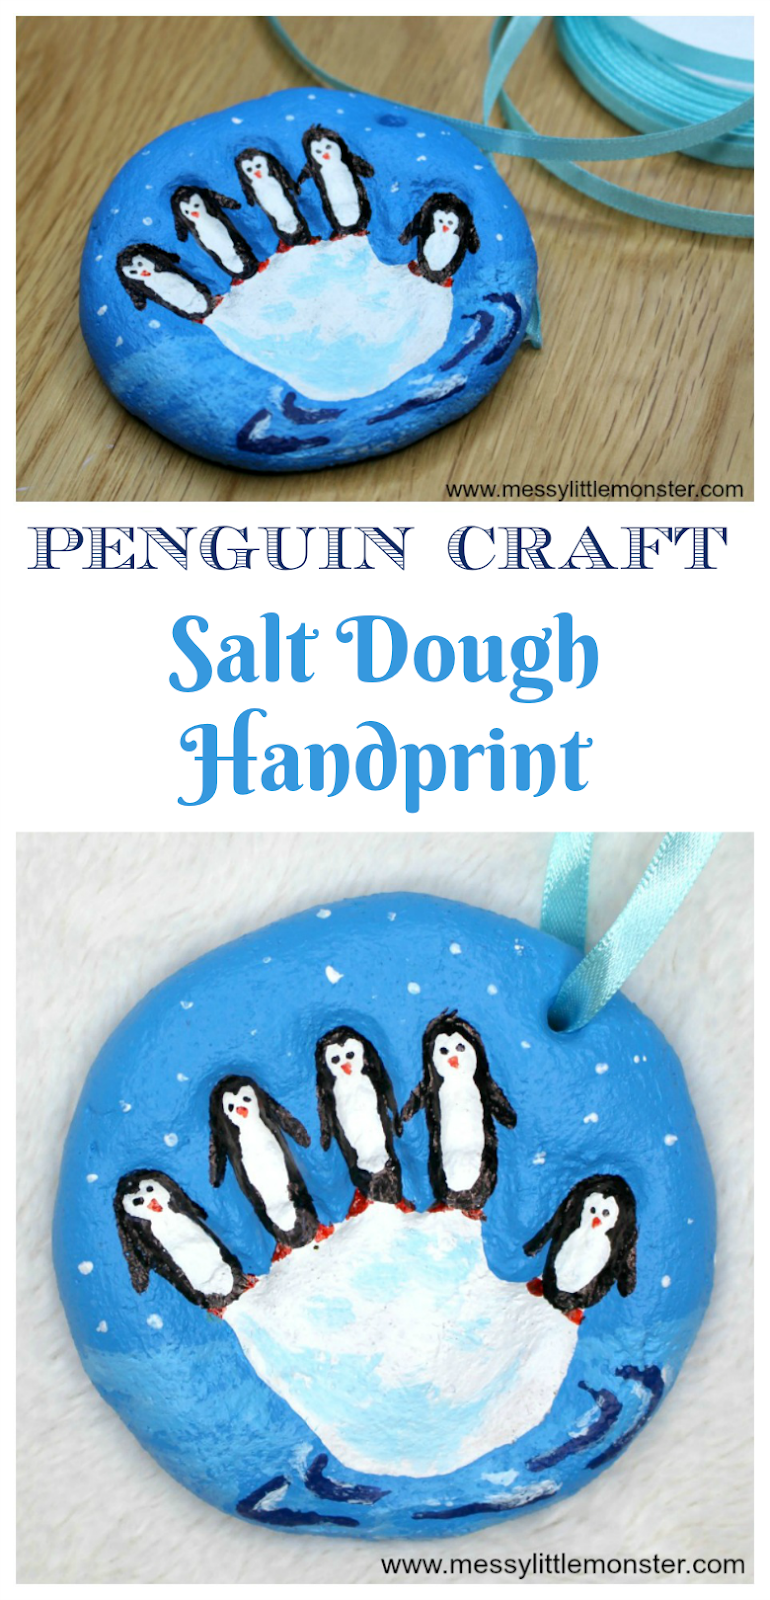 Salt dough handprint ornament. Penguin craft for kids. Winter craft. Winter activities for preschool